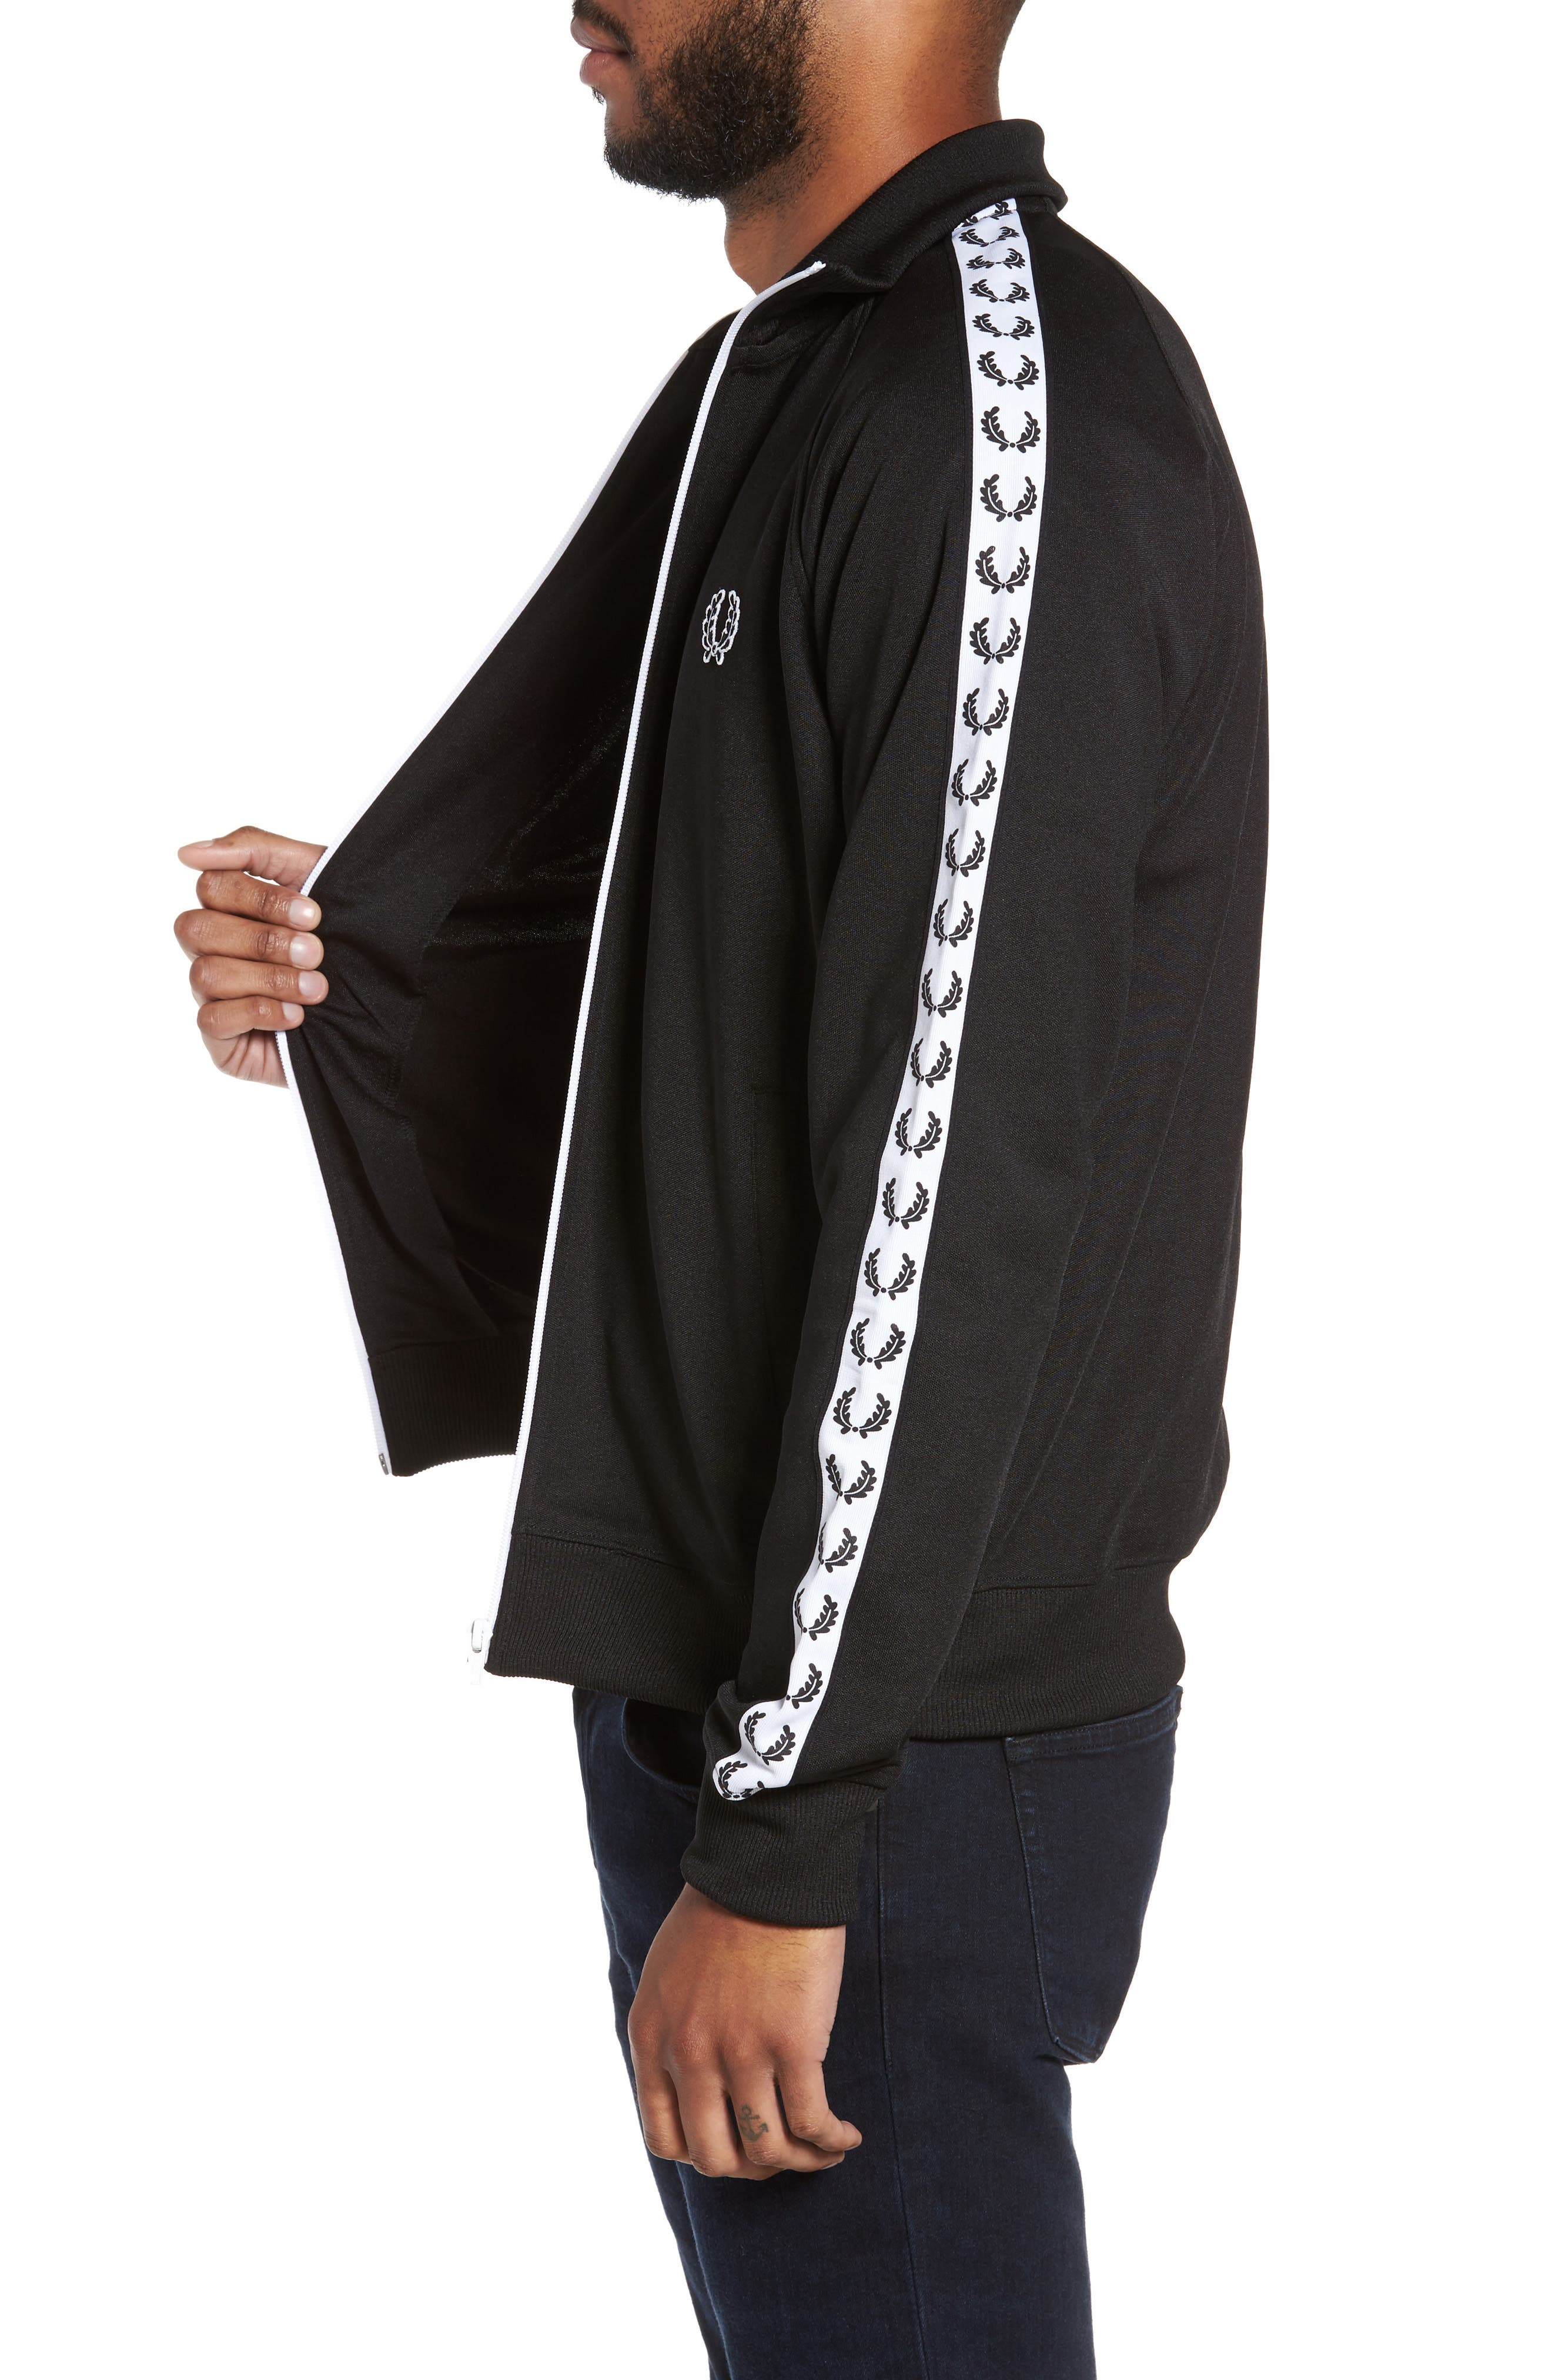 FRED PERRY,                             Laurel Tape Track Jacket,                             Alternate thumbnail 3, color,                             002